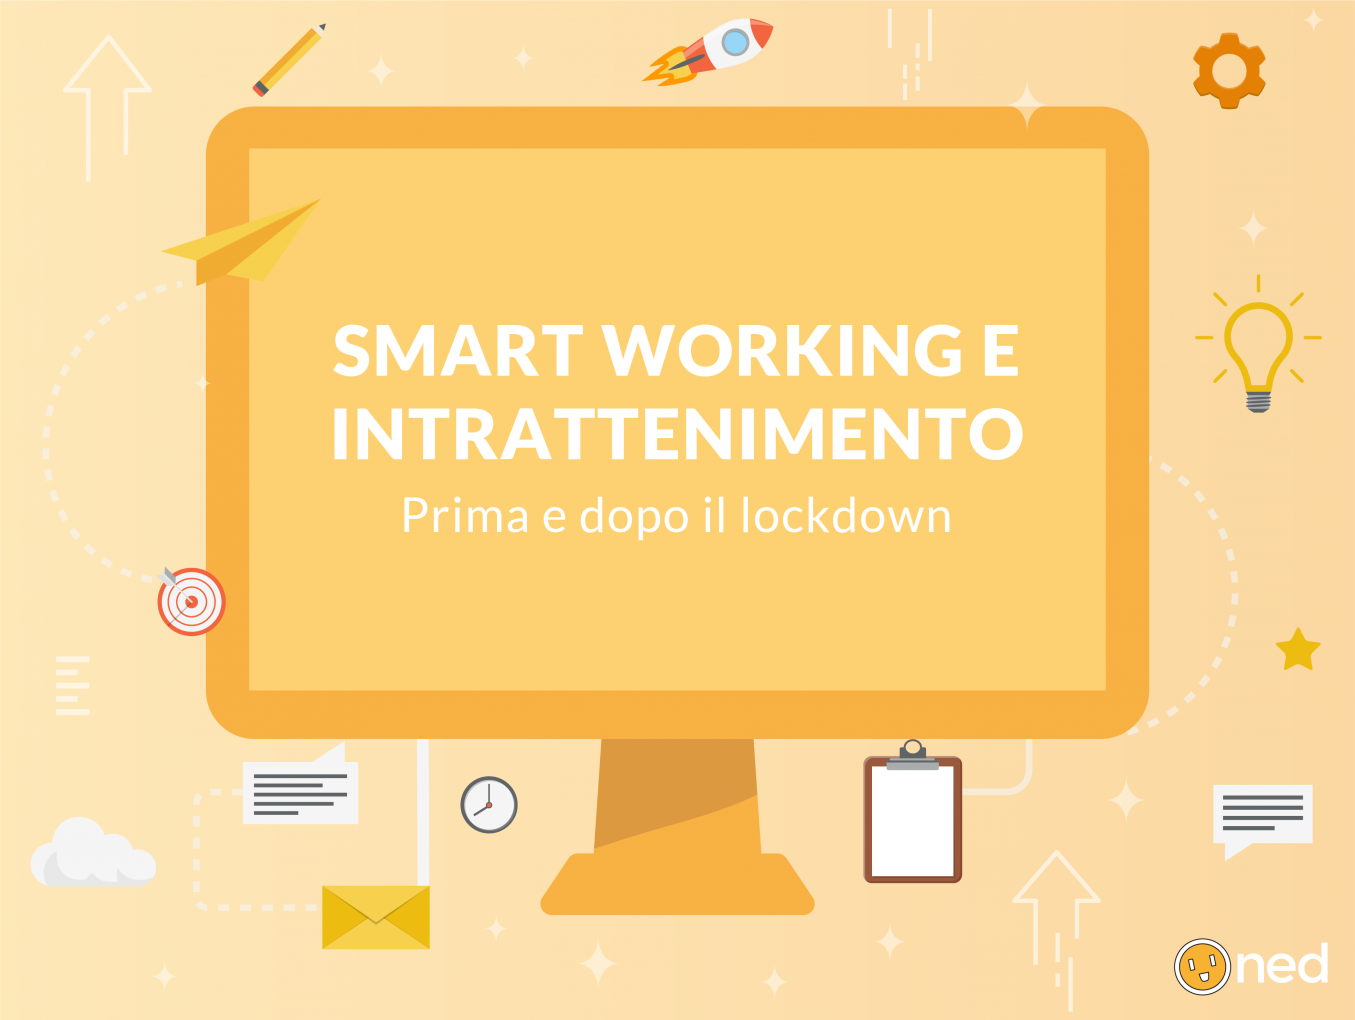 Smart working e intrattenimento: come risparmiare ora e dopo il lockdown